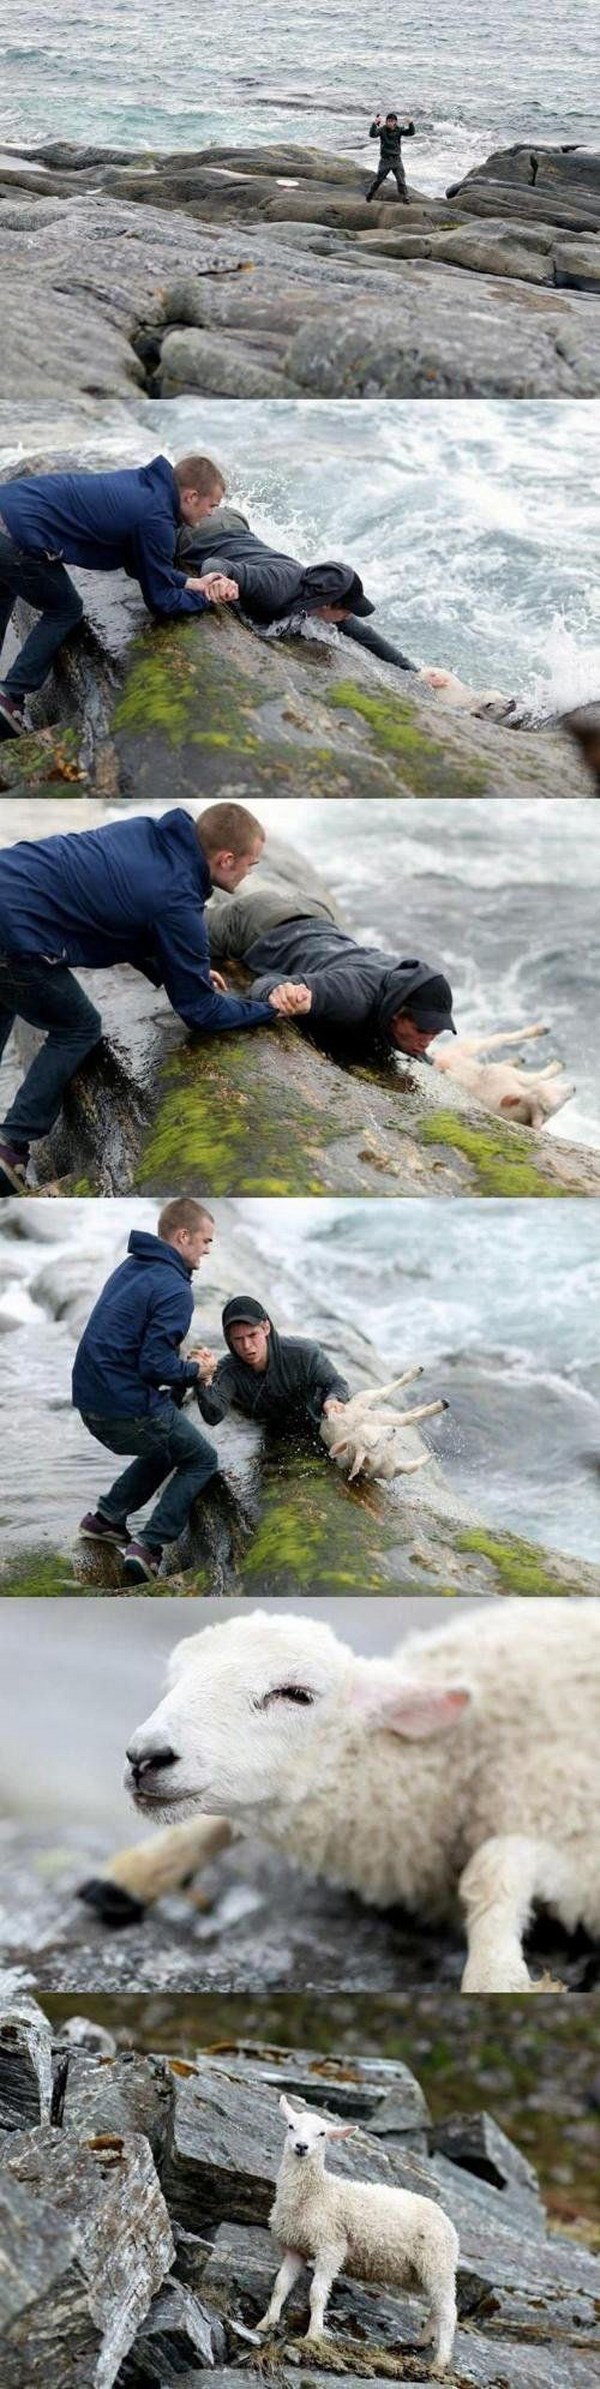 inspiring-photos-that-will-restore-your-faith-in-humanity017